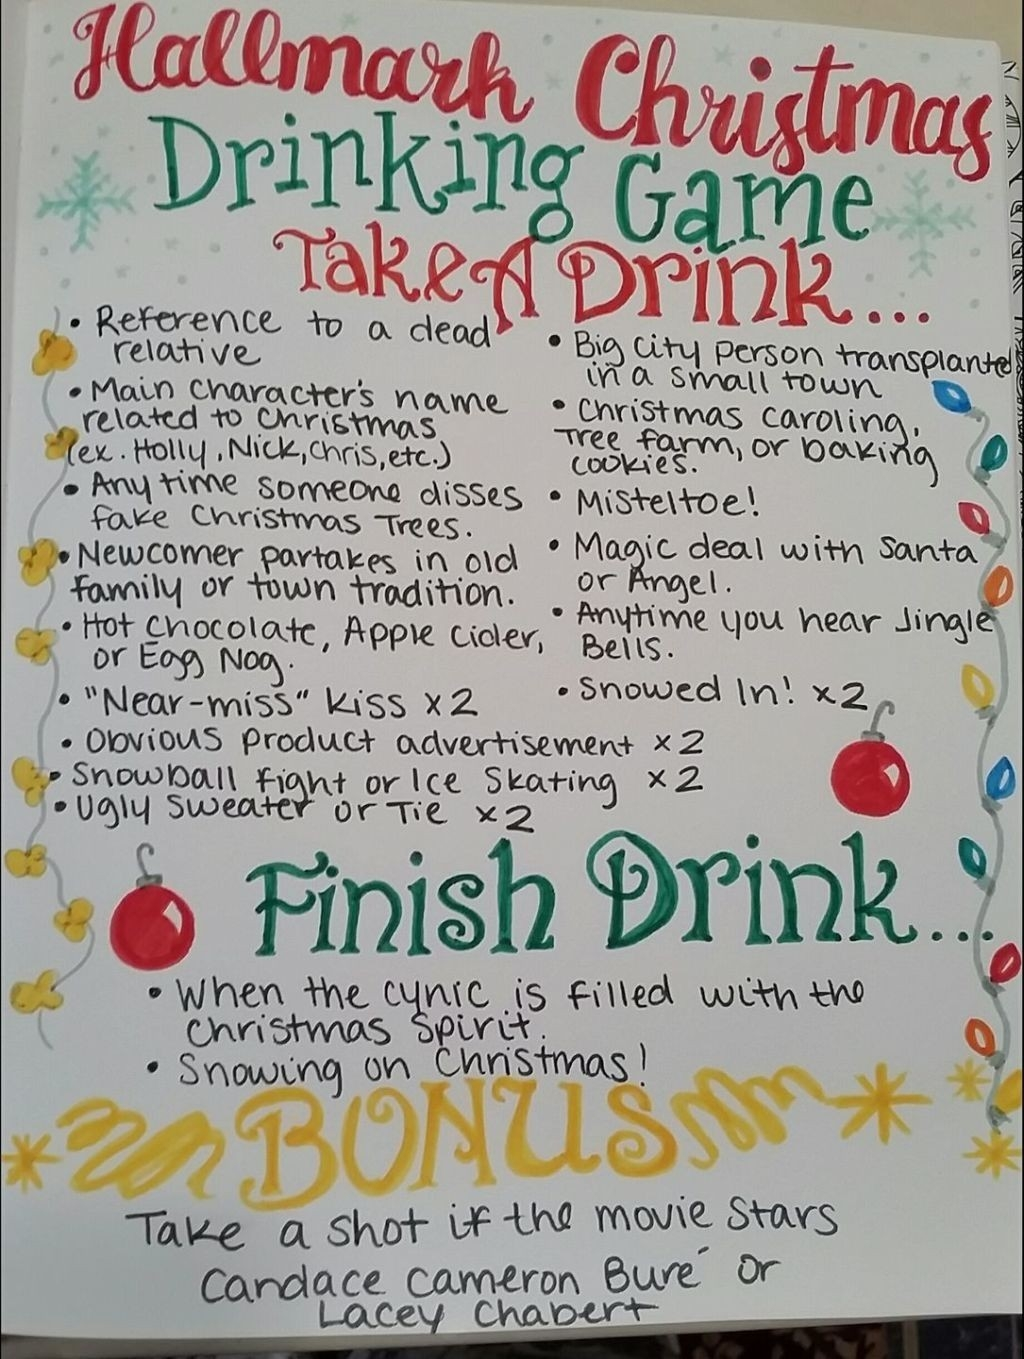 This Hallmark Christmas Movie Drinking Game Officially Wins-What Are Hallmark Holidays